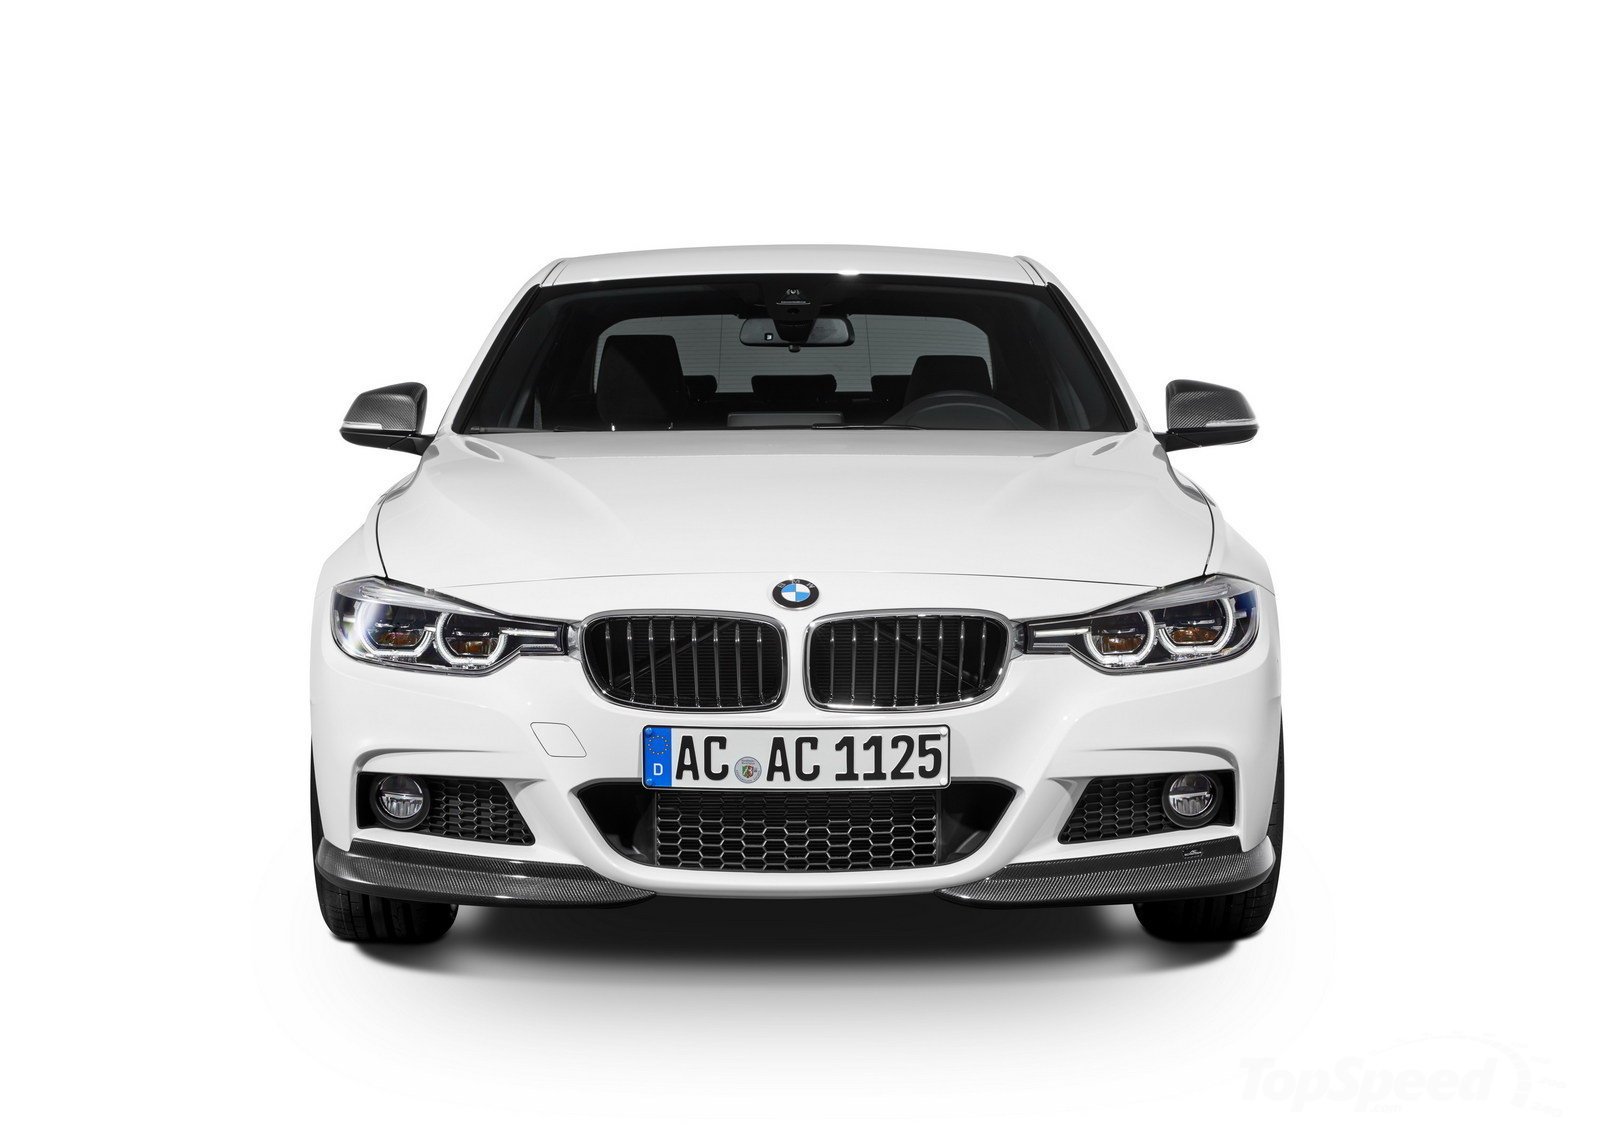 2016 Bmw 3 Series Facelift Gets The Ac Schnitzer Treatment